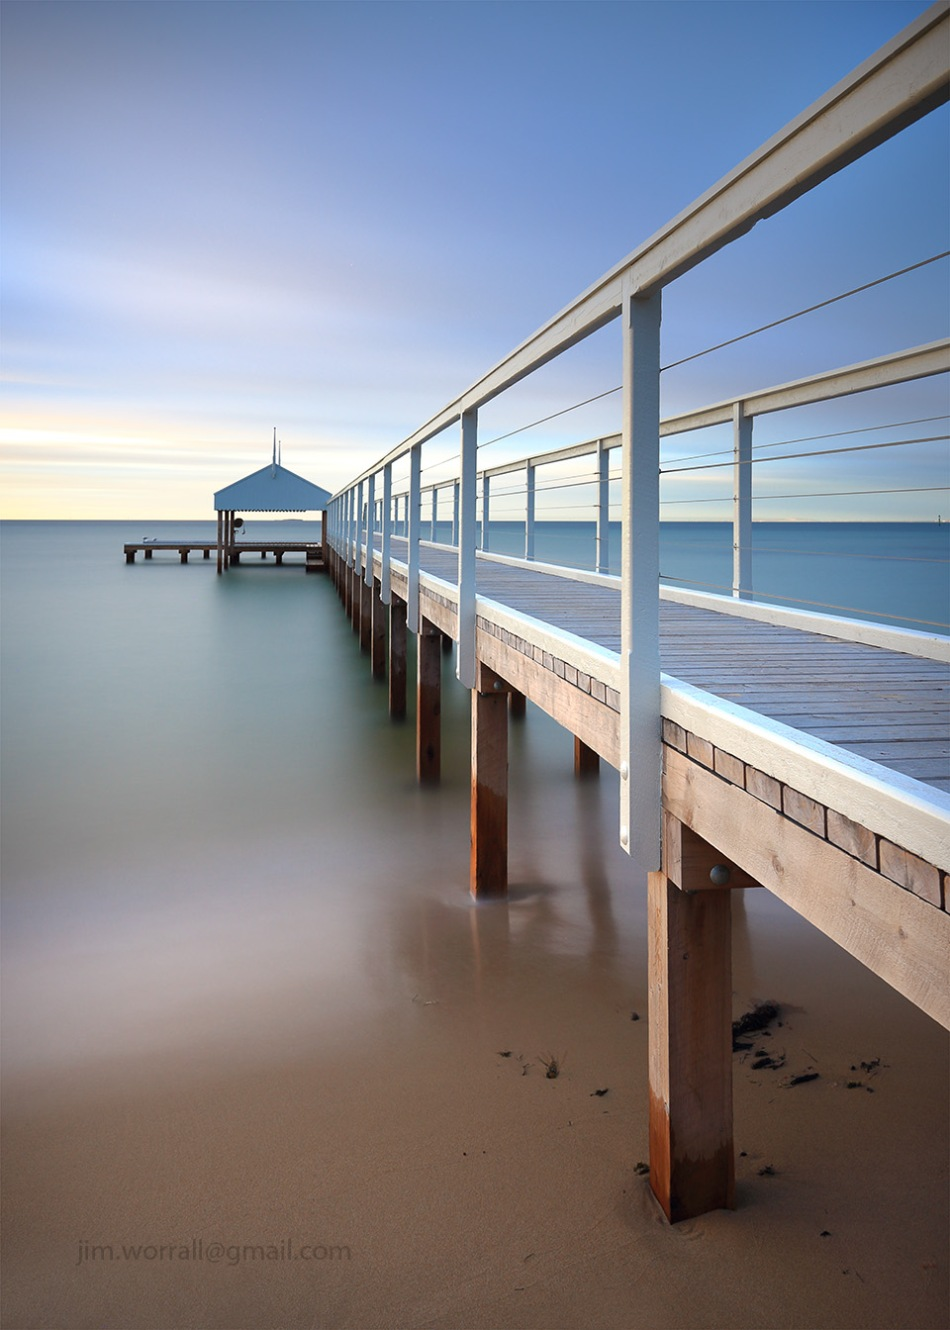 port phillip bay, long exposure, jim worrall, jetty, pier, mornington peninsula